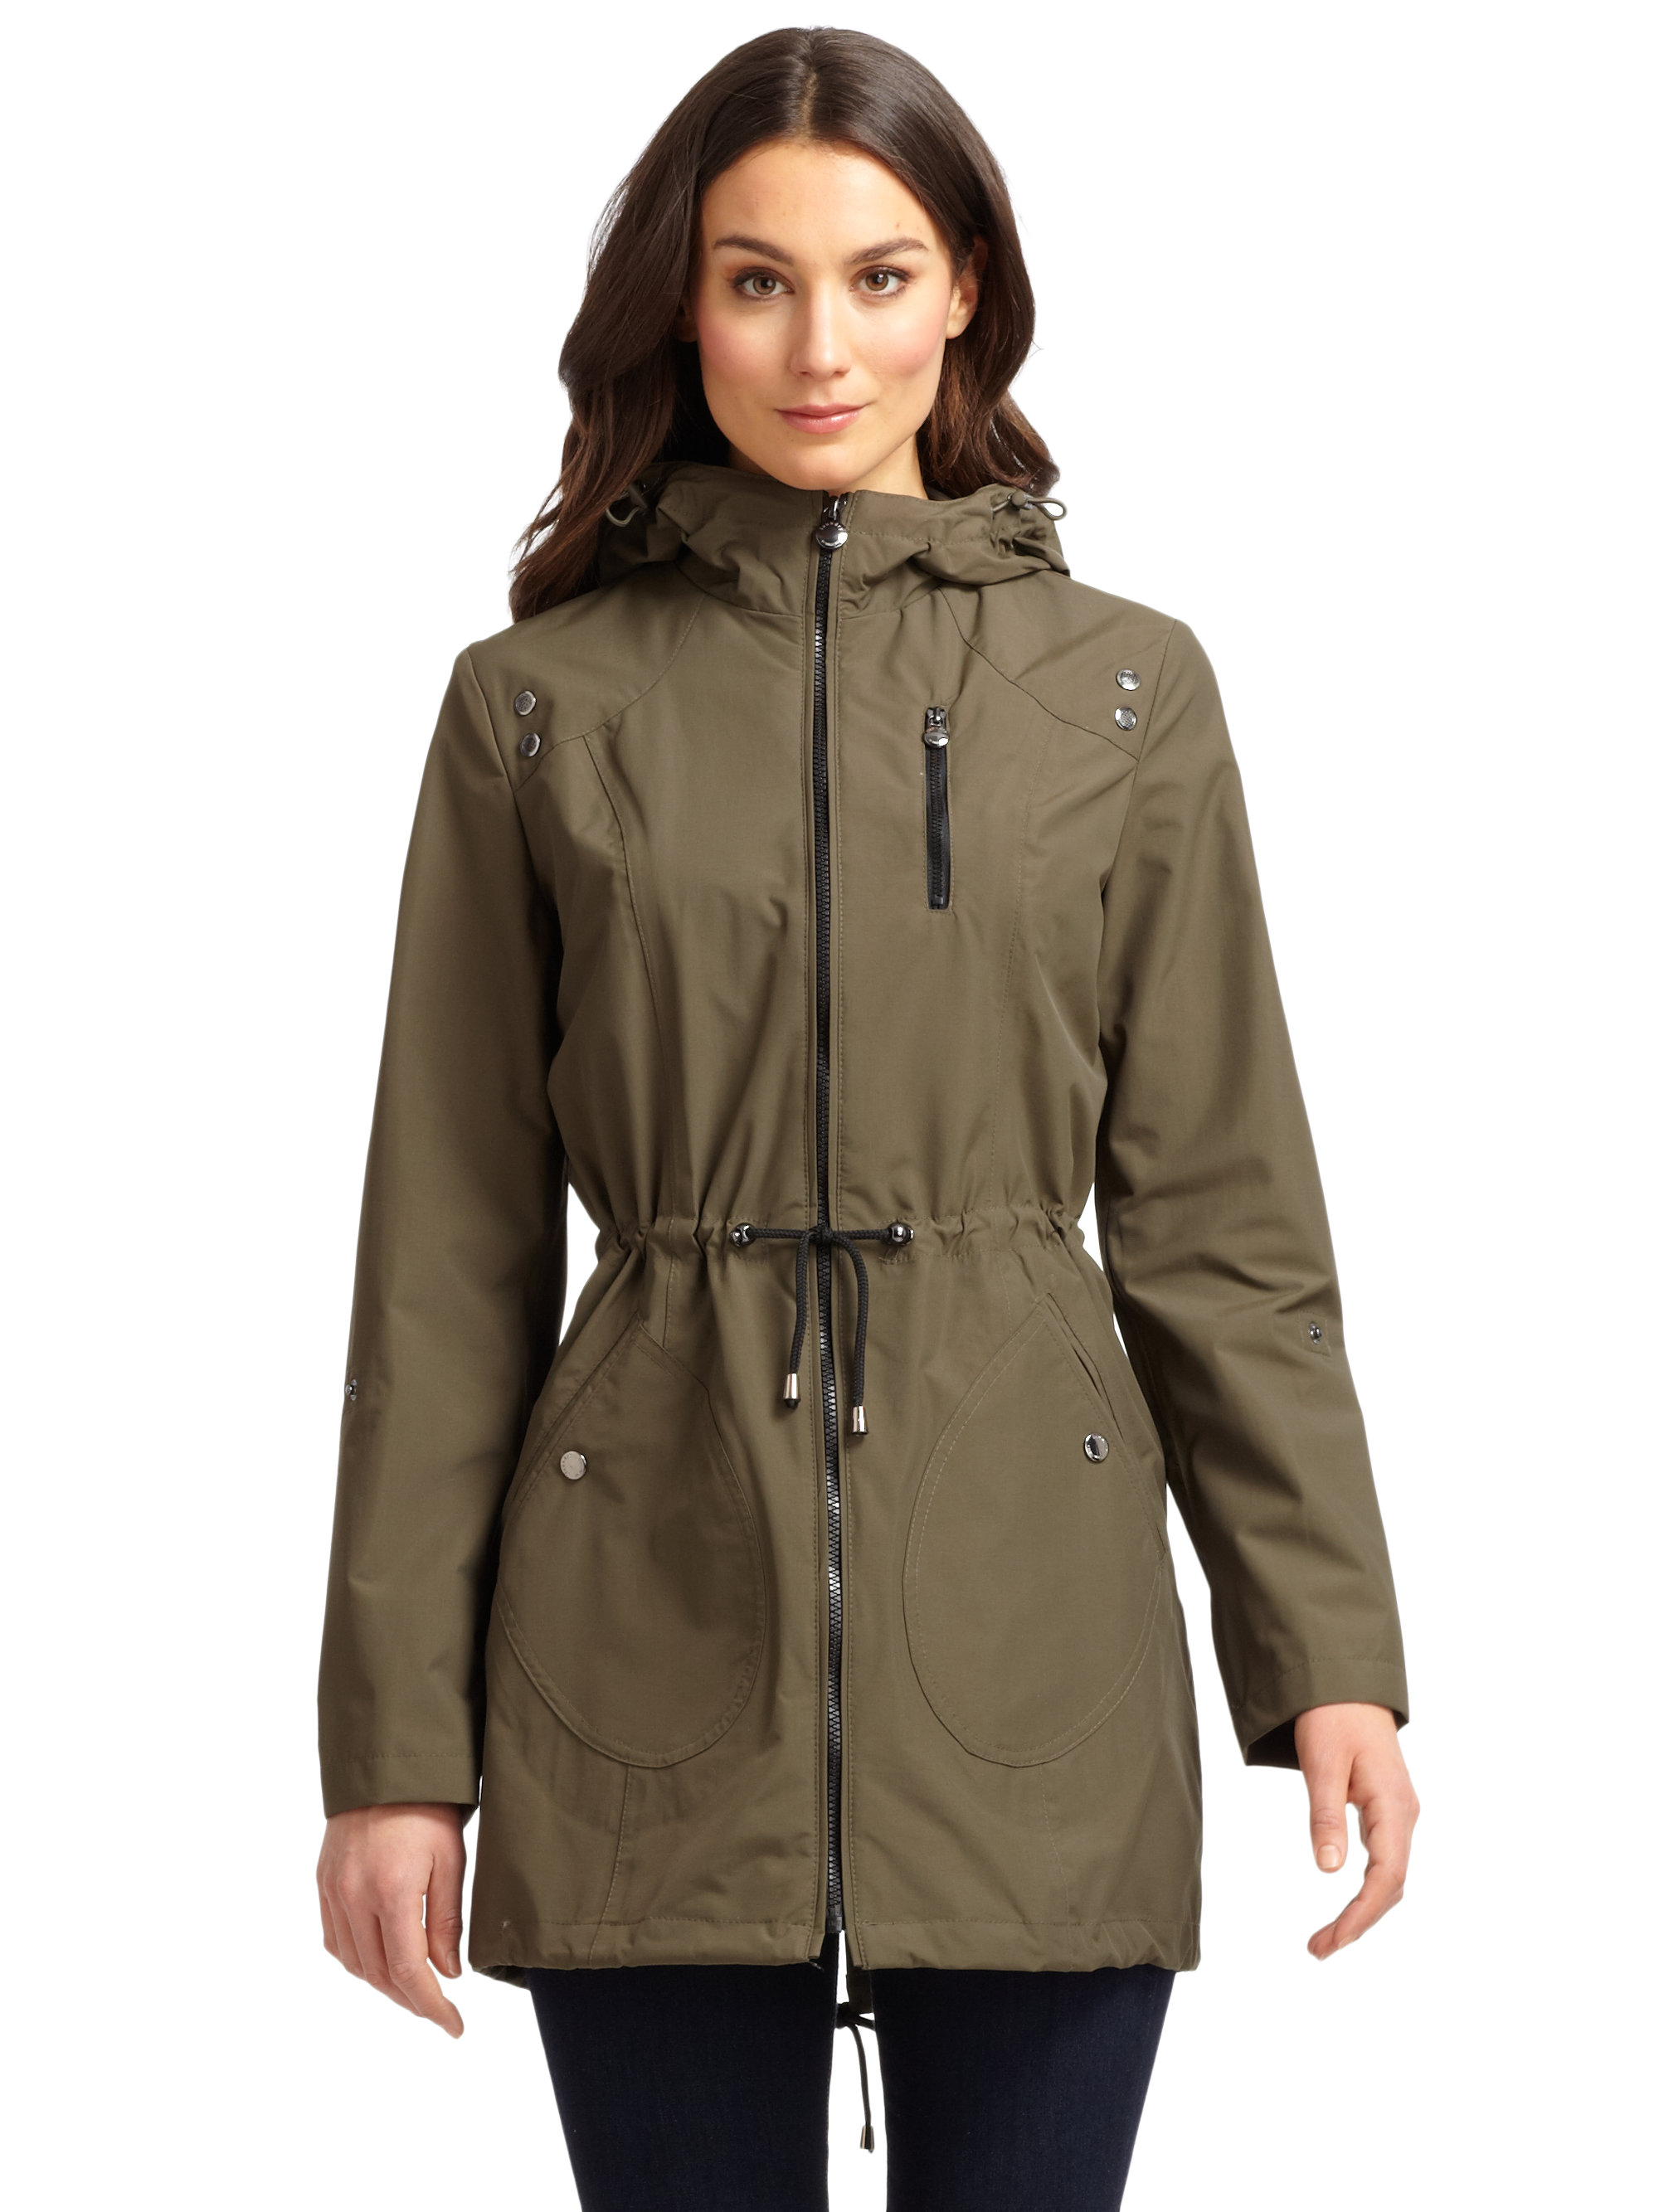 Anorak Rain Jacket Women S